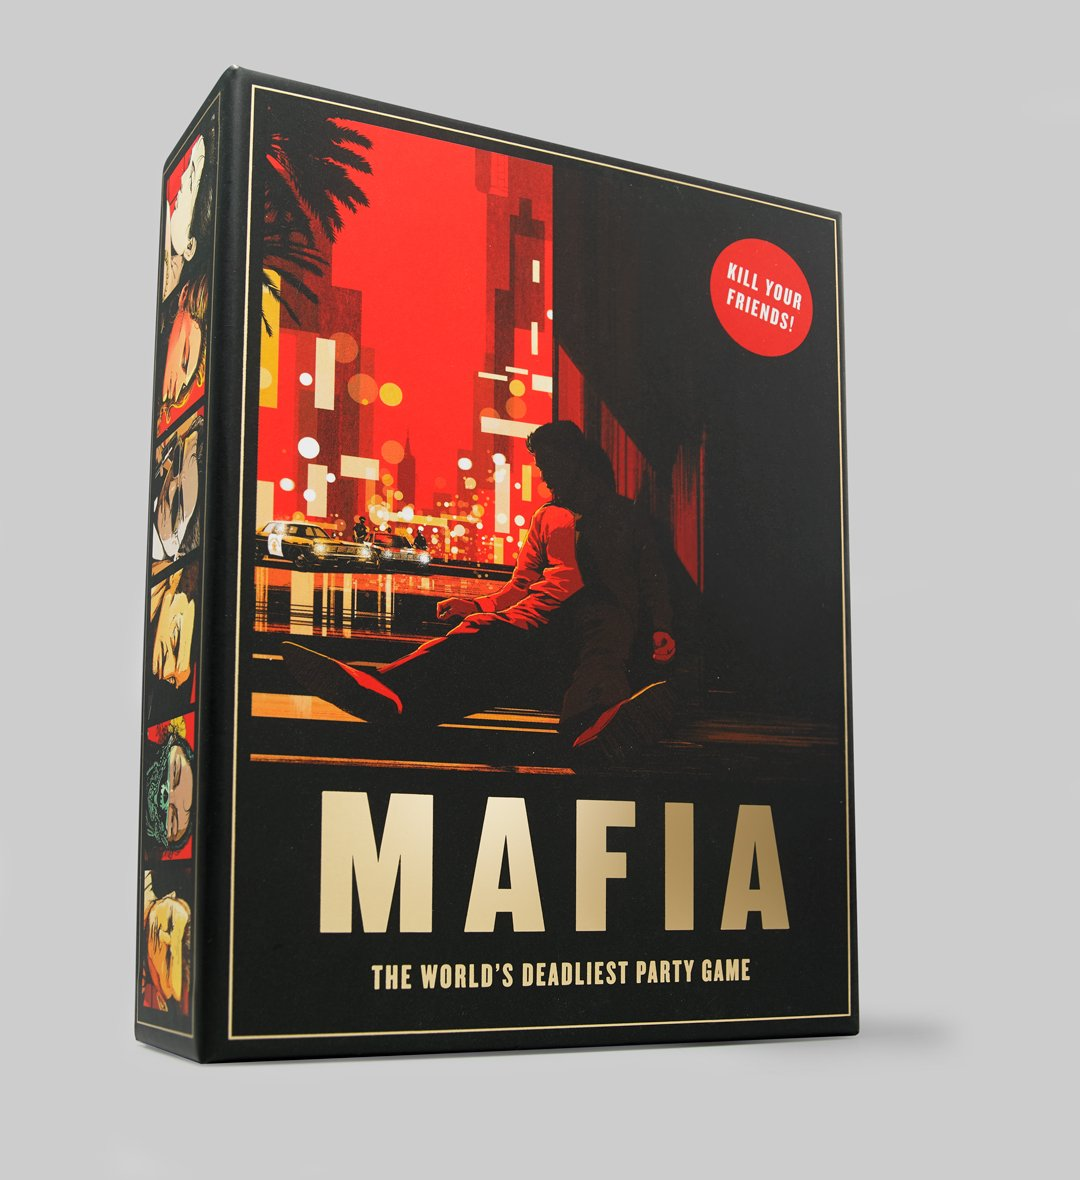 Pentagram's @angushyland has created this beautiful party game for @laurencekingpub, based on the classic role-playing strategy game 'Mafia'. Featuring illustrations by @shanjiang790, it comprises of 24 street character cards, a crime-scene notepad, and a definitive game guide.